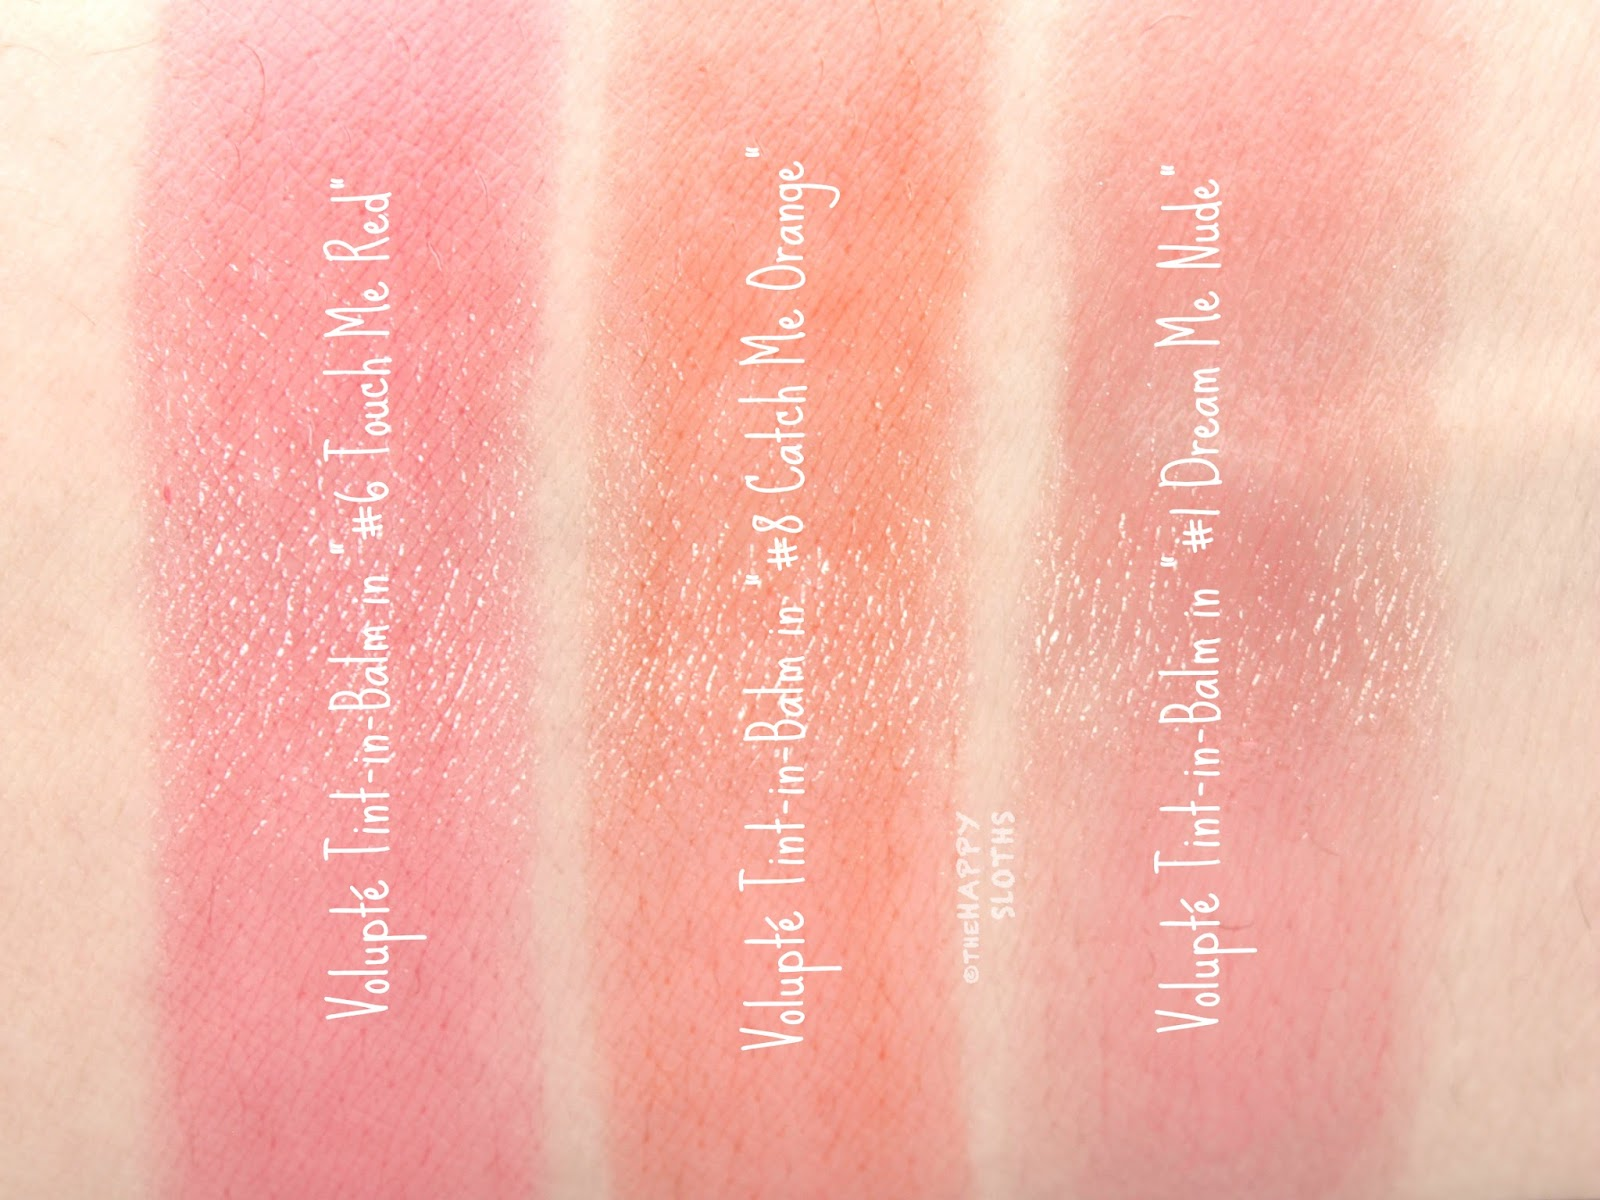 """Yves Saint Laurent Volupte Tint-in-Balm in """"1 Dream Me Nude"""", """"6 Touch Me Red"""", & """"8 Catch Me Orange"""": Review and Swatches"""